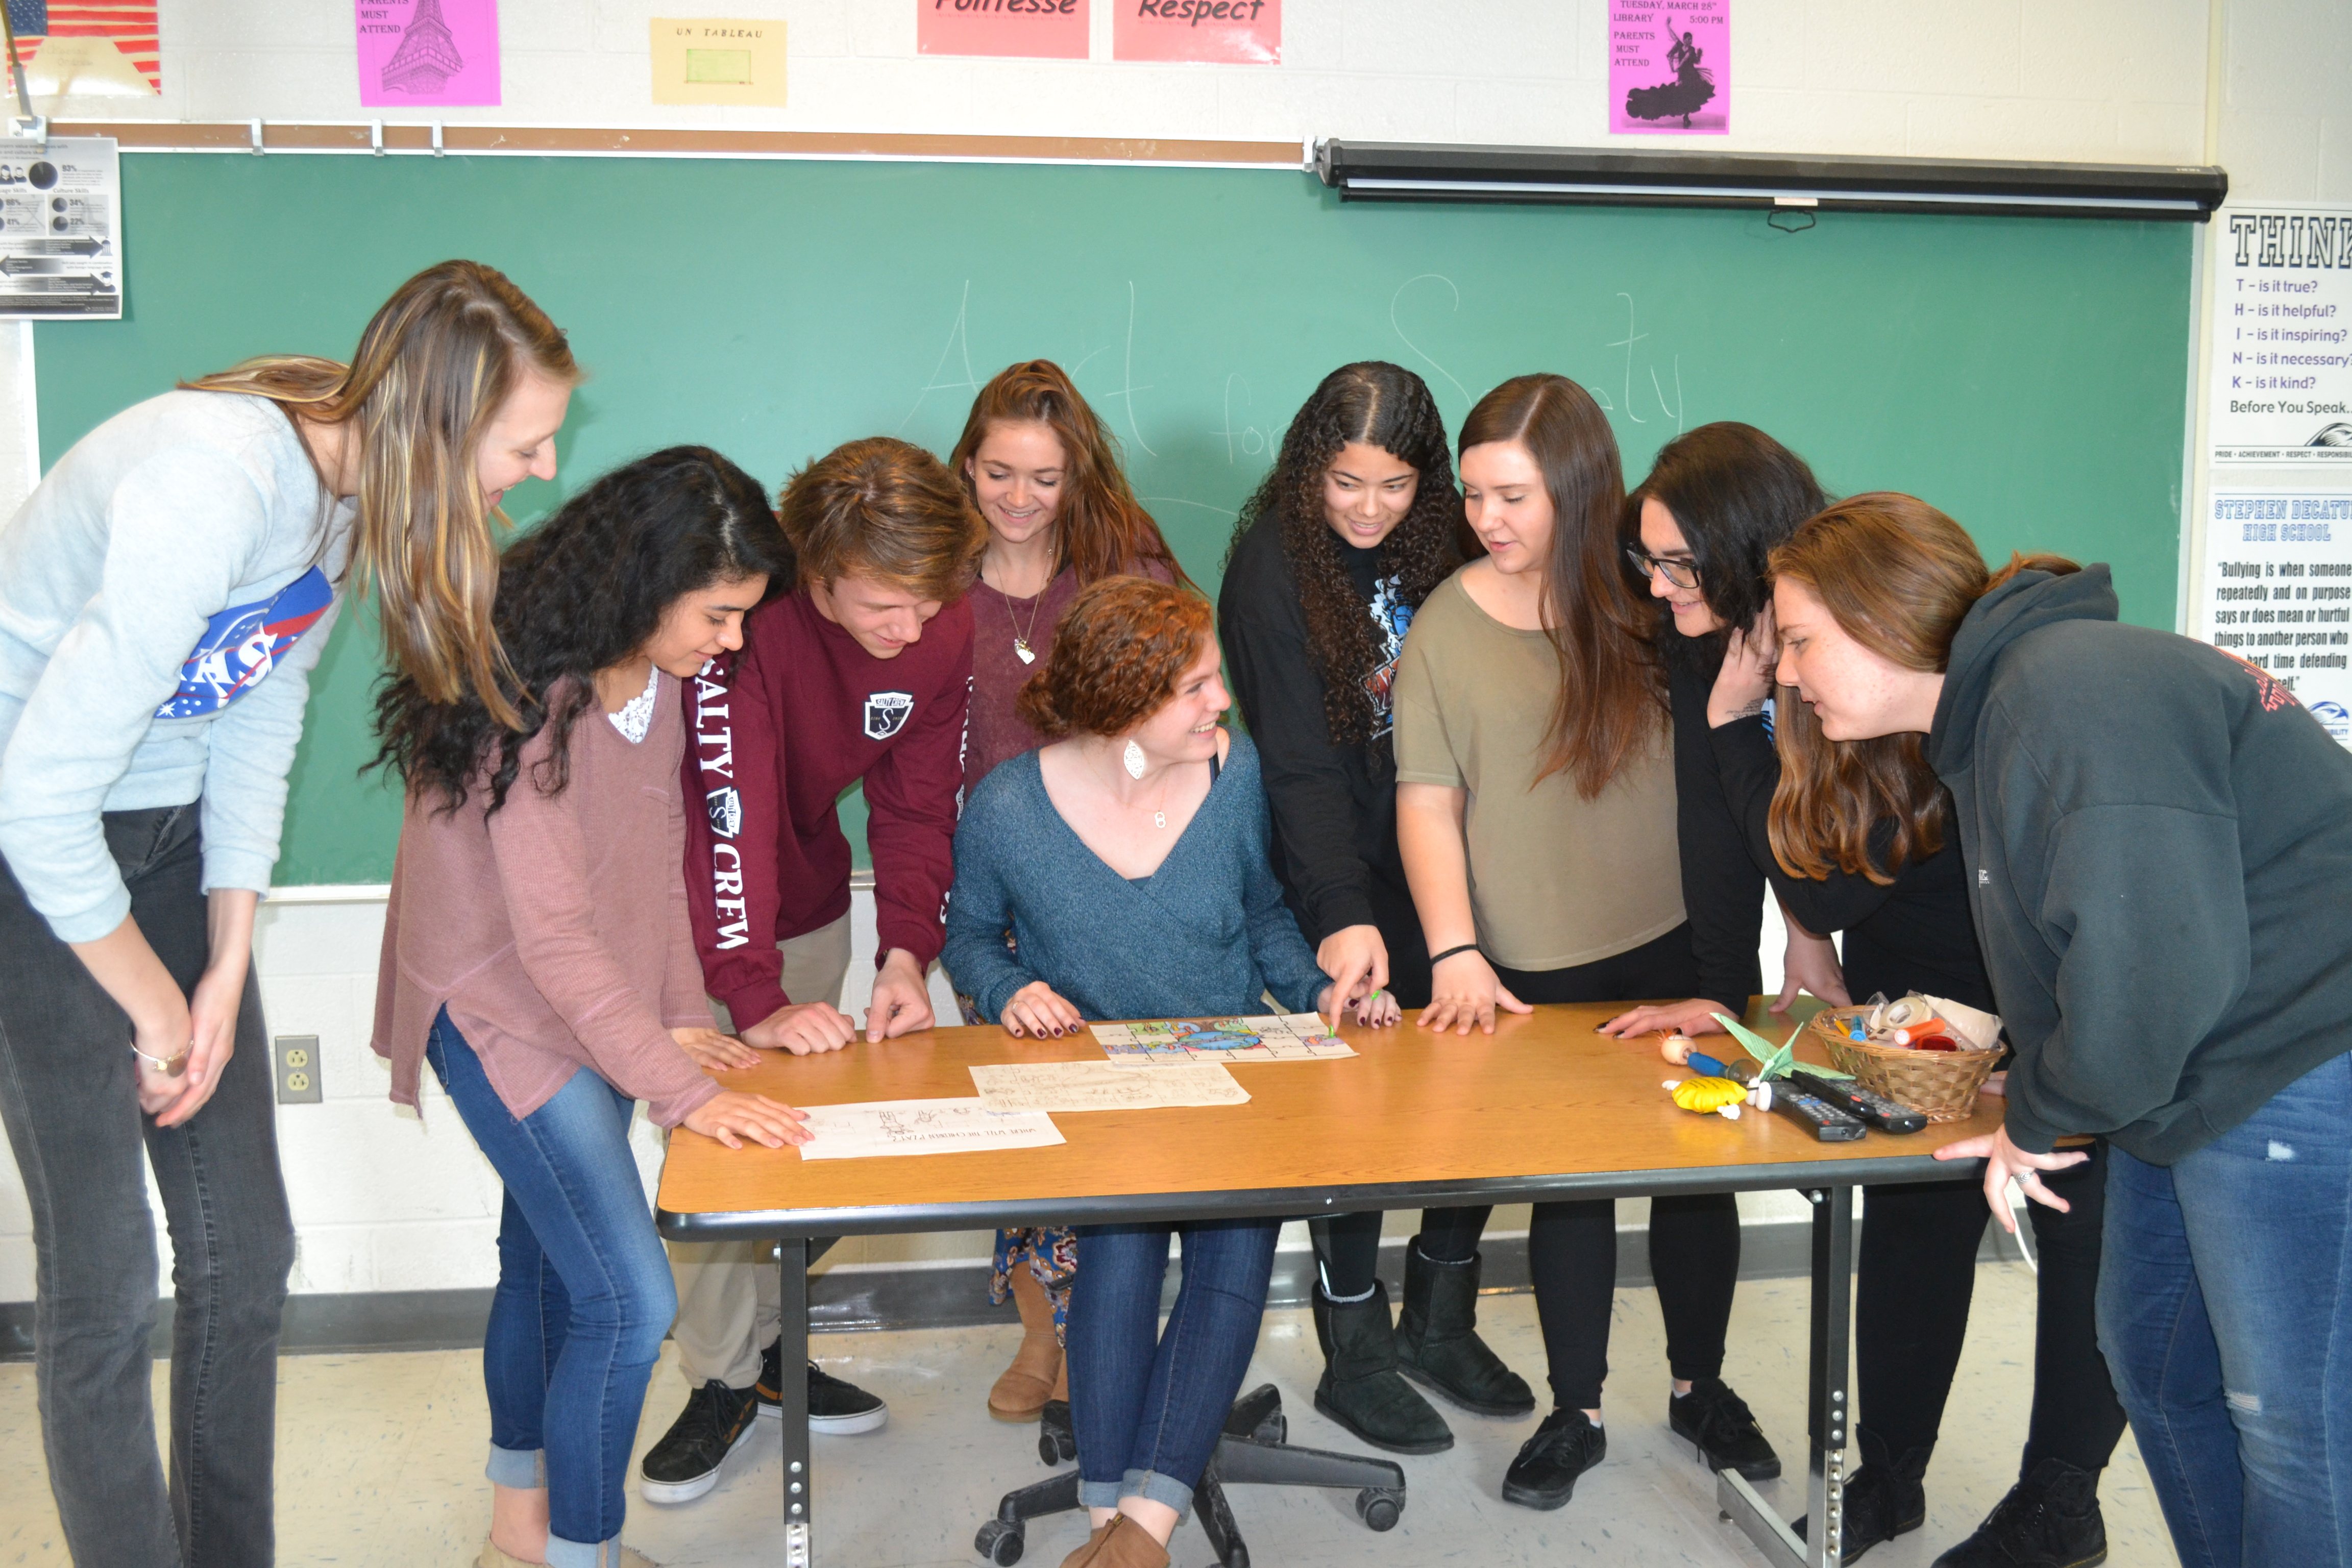 Foreign Language Club members from Stephen Decatur High School are pictured looking over designs for their traveling mural project. Photo by Charlene Sharpe